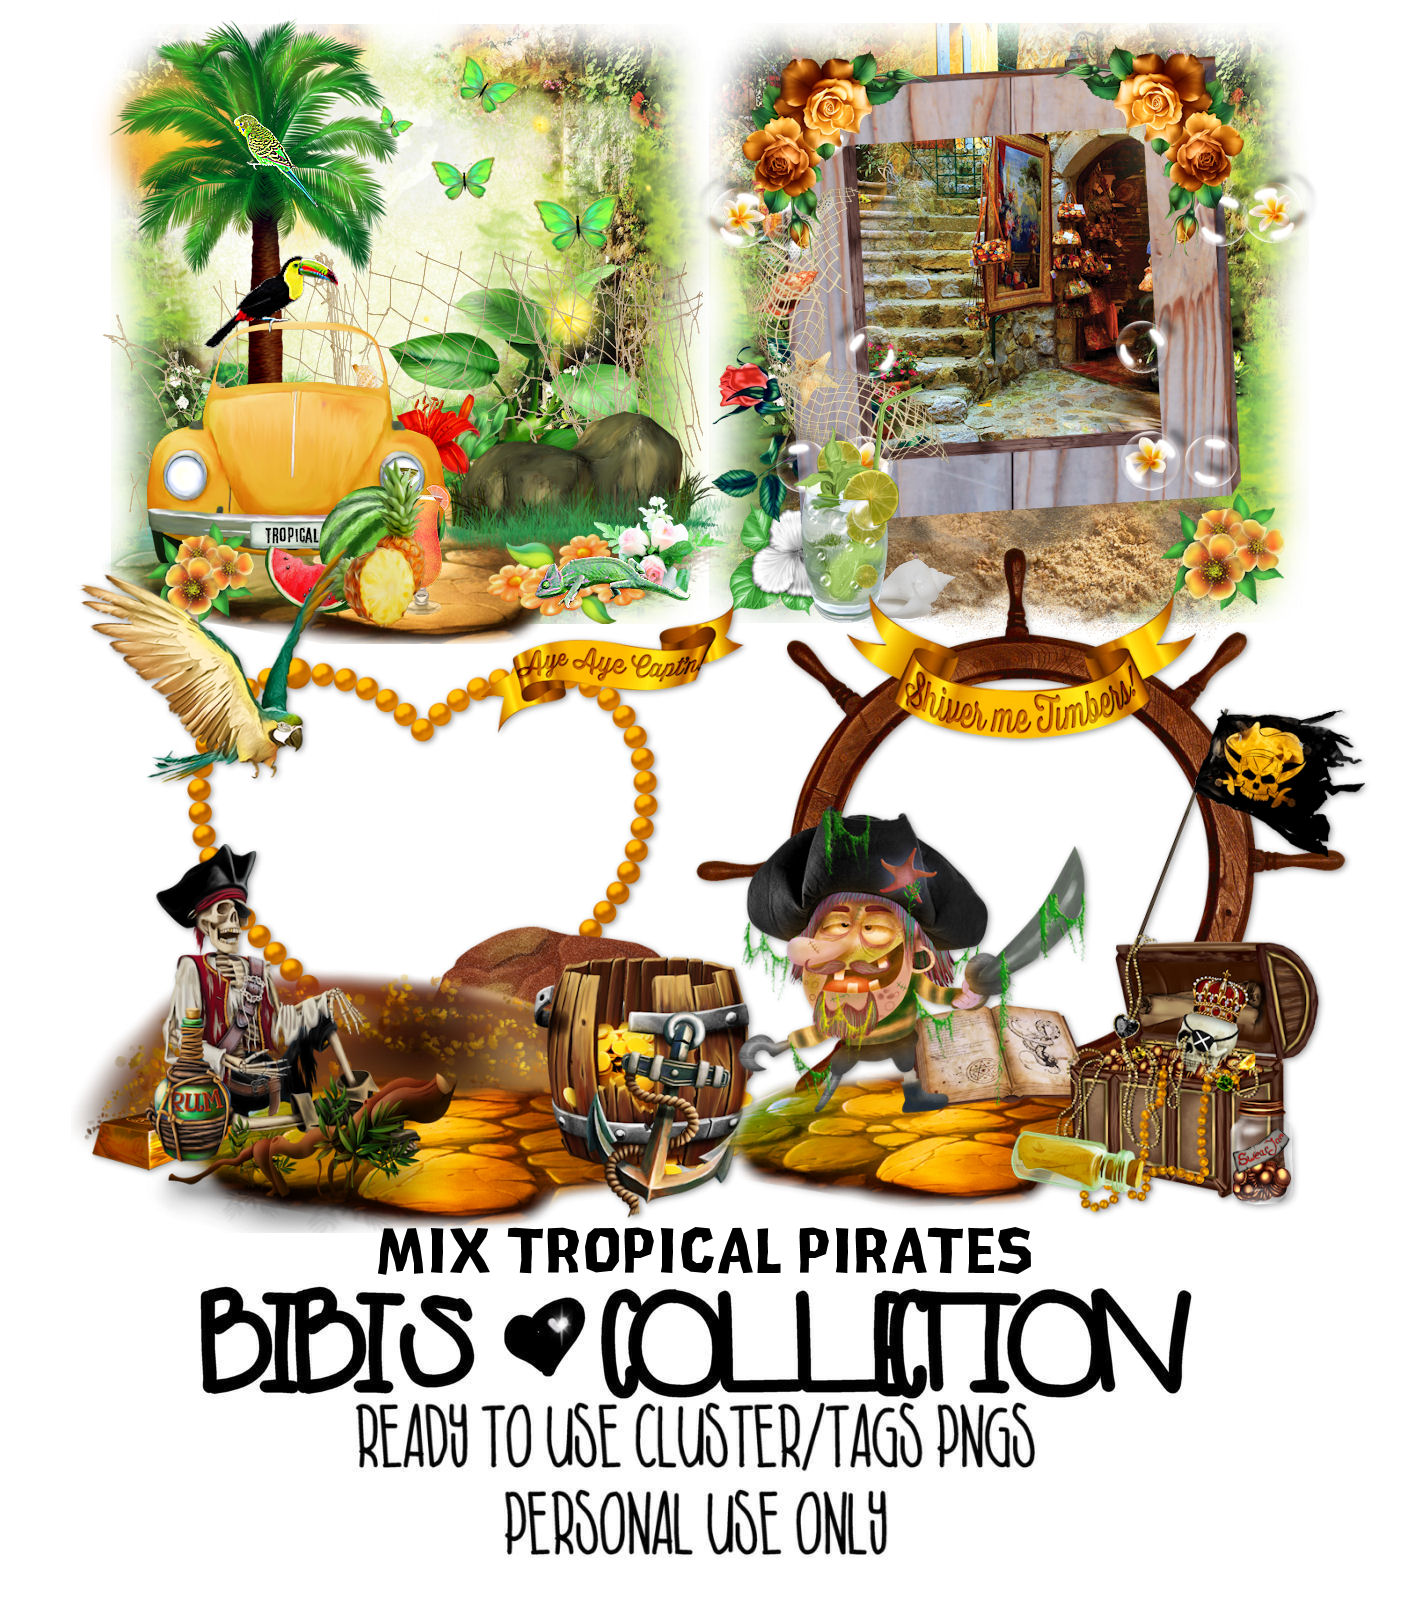 MIX TROPICAL PIRATES READY CLUSTER TAGS PNG